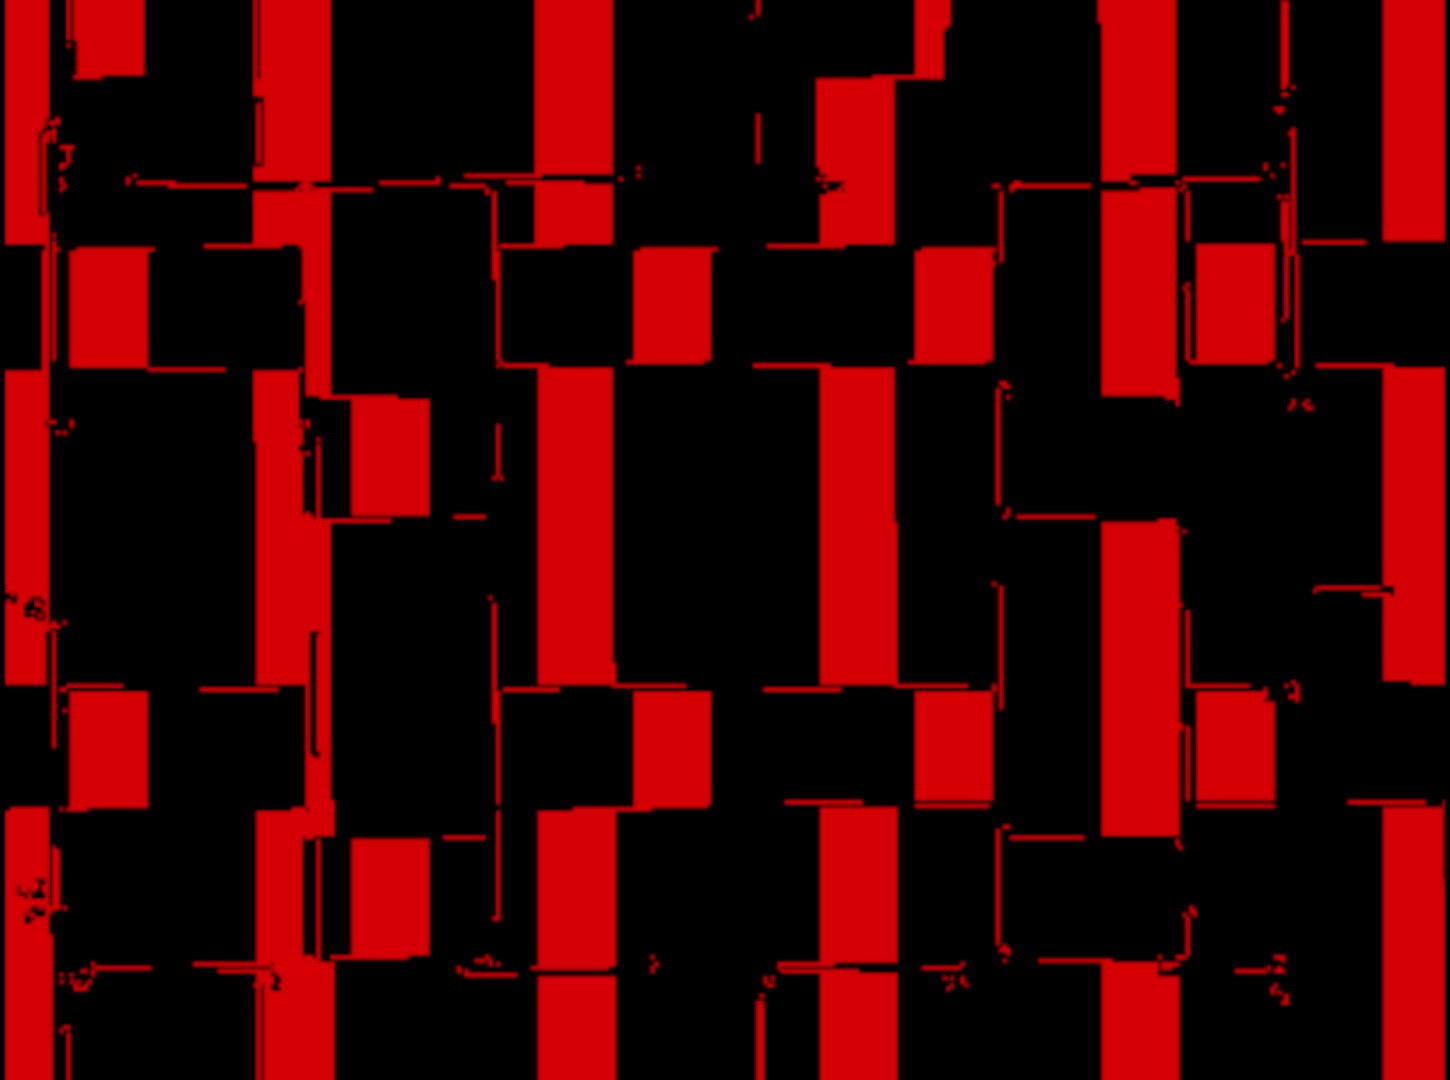 Royalty Free Video VJ Loops: Glitchy Grids